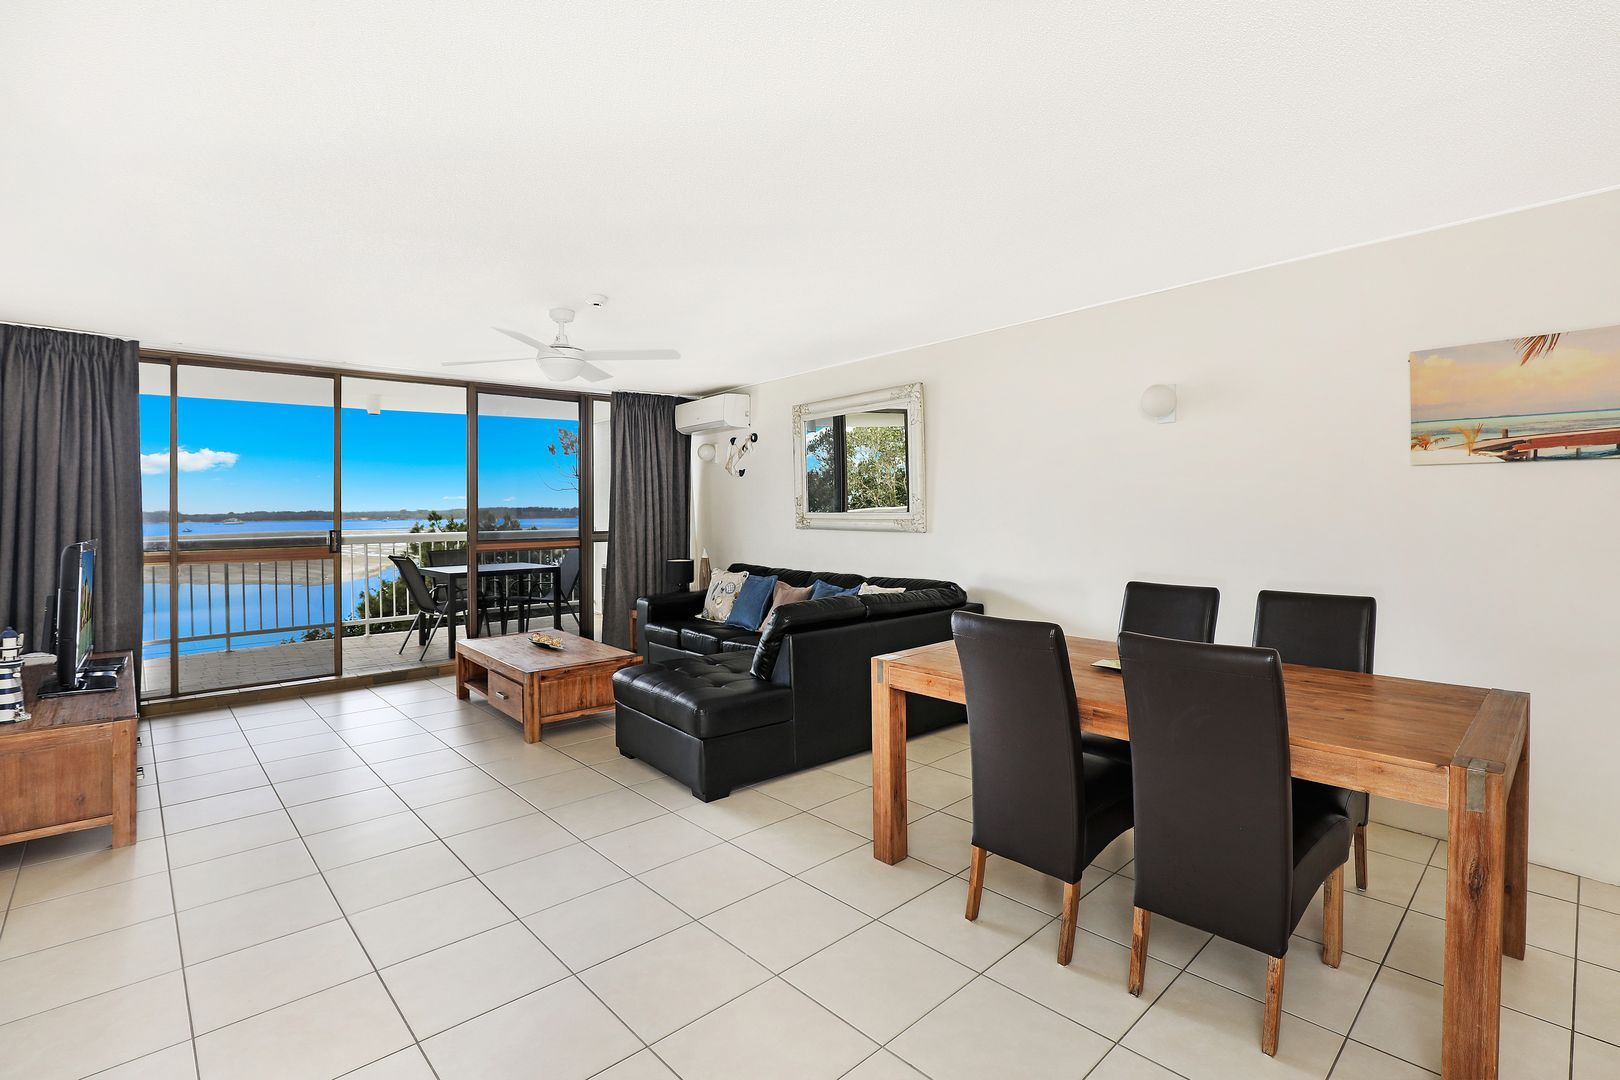 25/49 Landsborough Pde - Gemini Resort, Golden Beach QLD 4551, Image 1